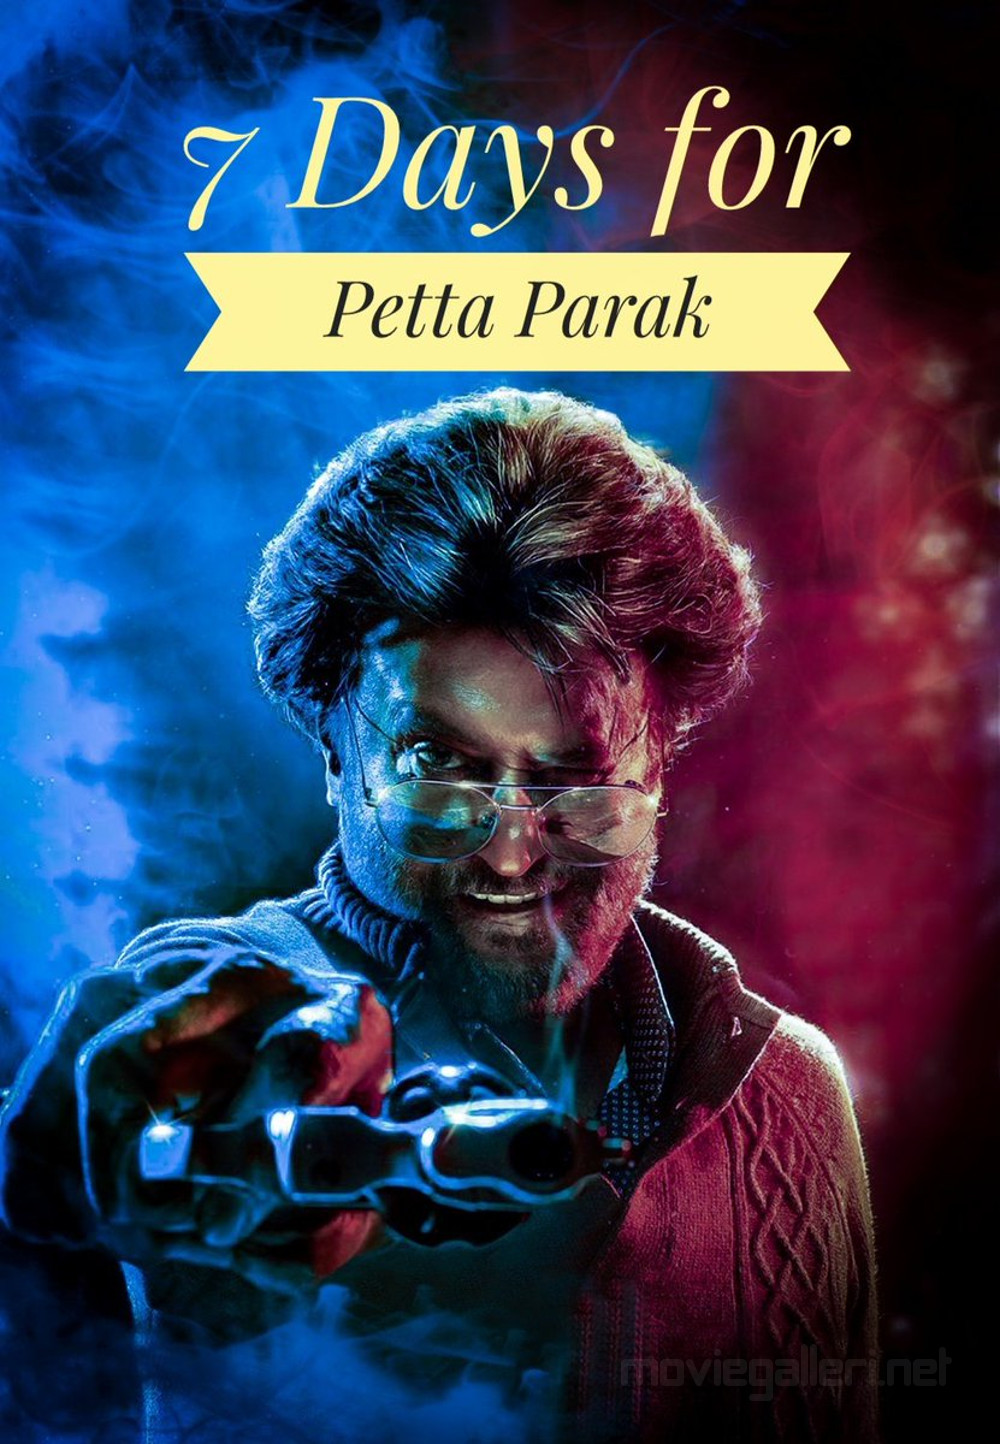 7 Days for Petta Parak Rajinikanth Poster